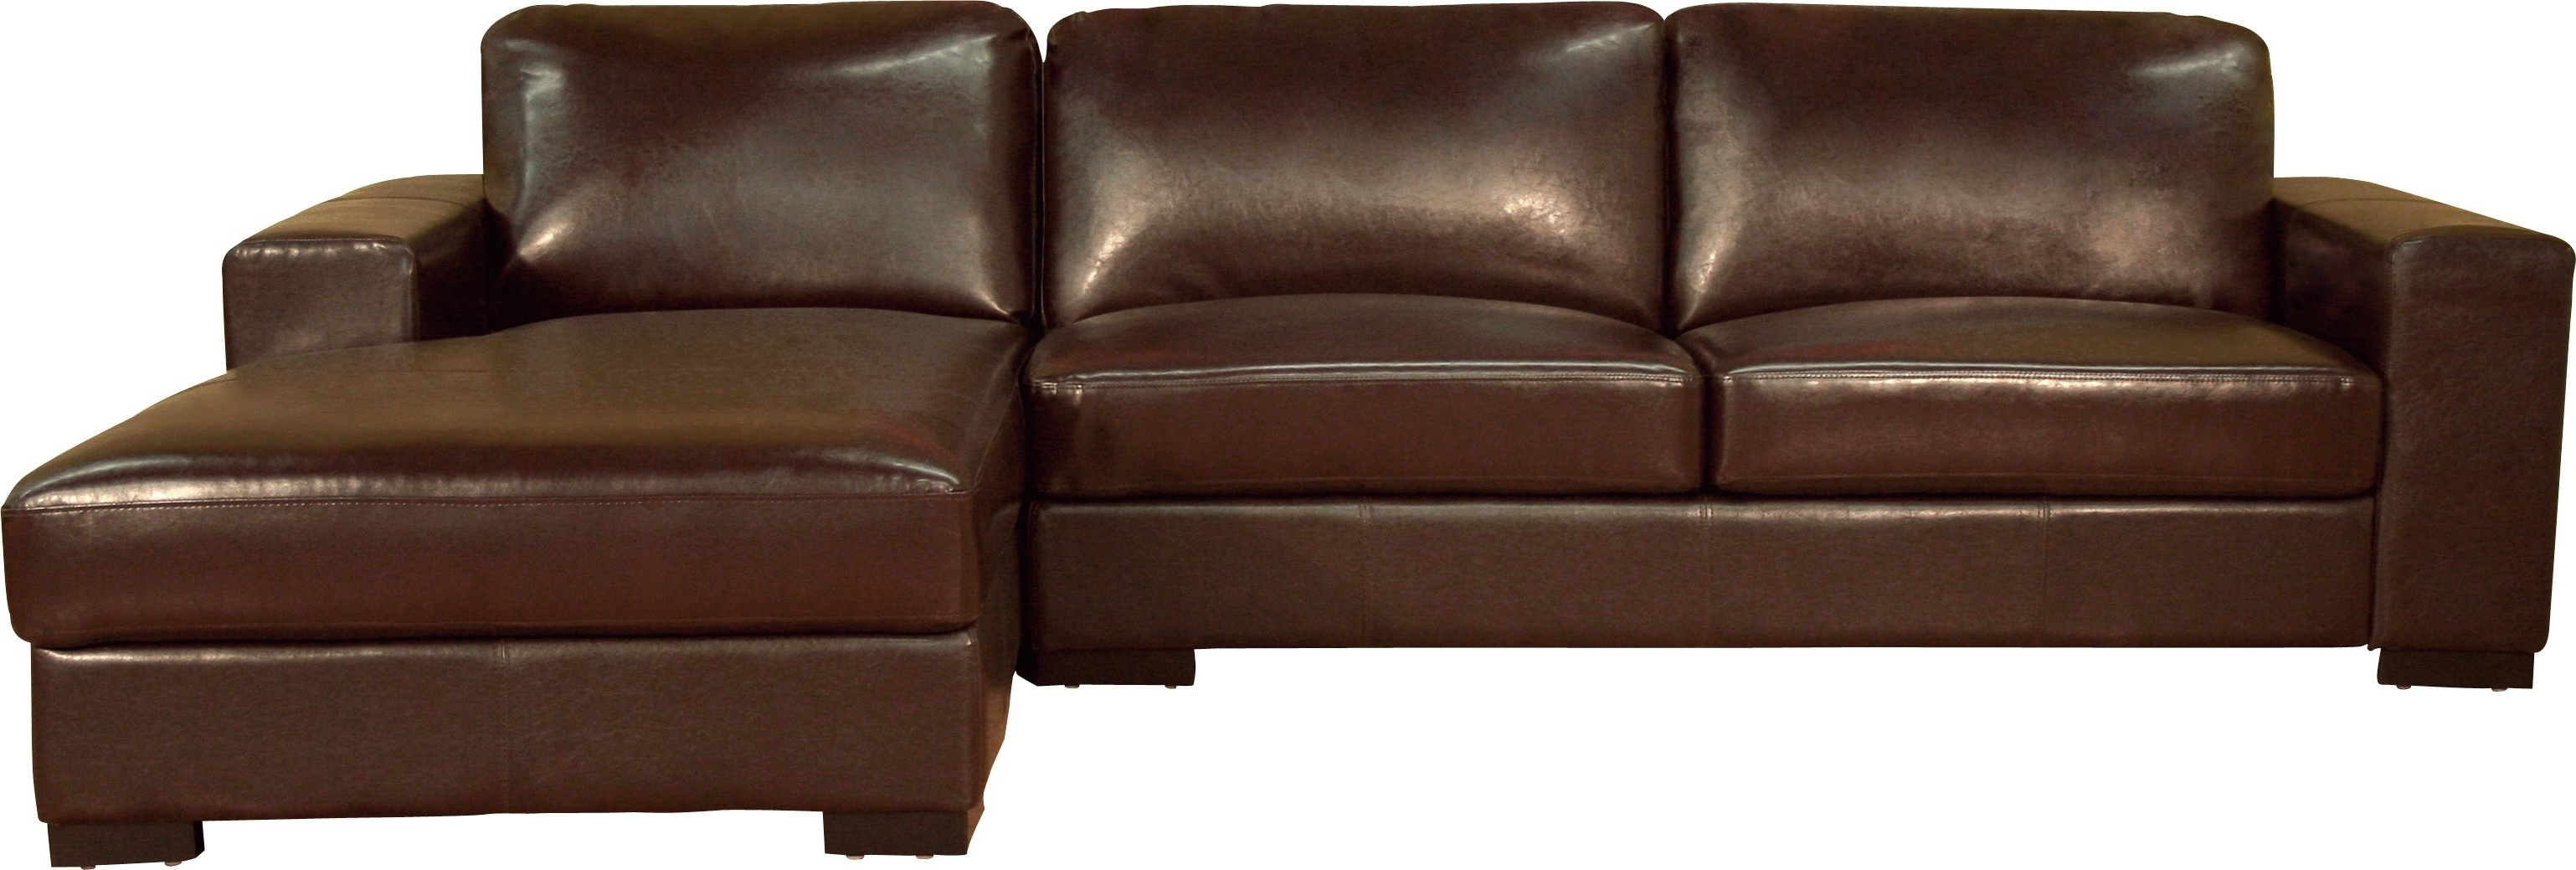 Leather Sofa Chaises Pertaining To Popular Furniture (View 10 of 15)